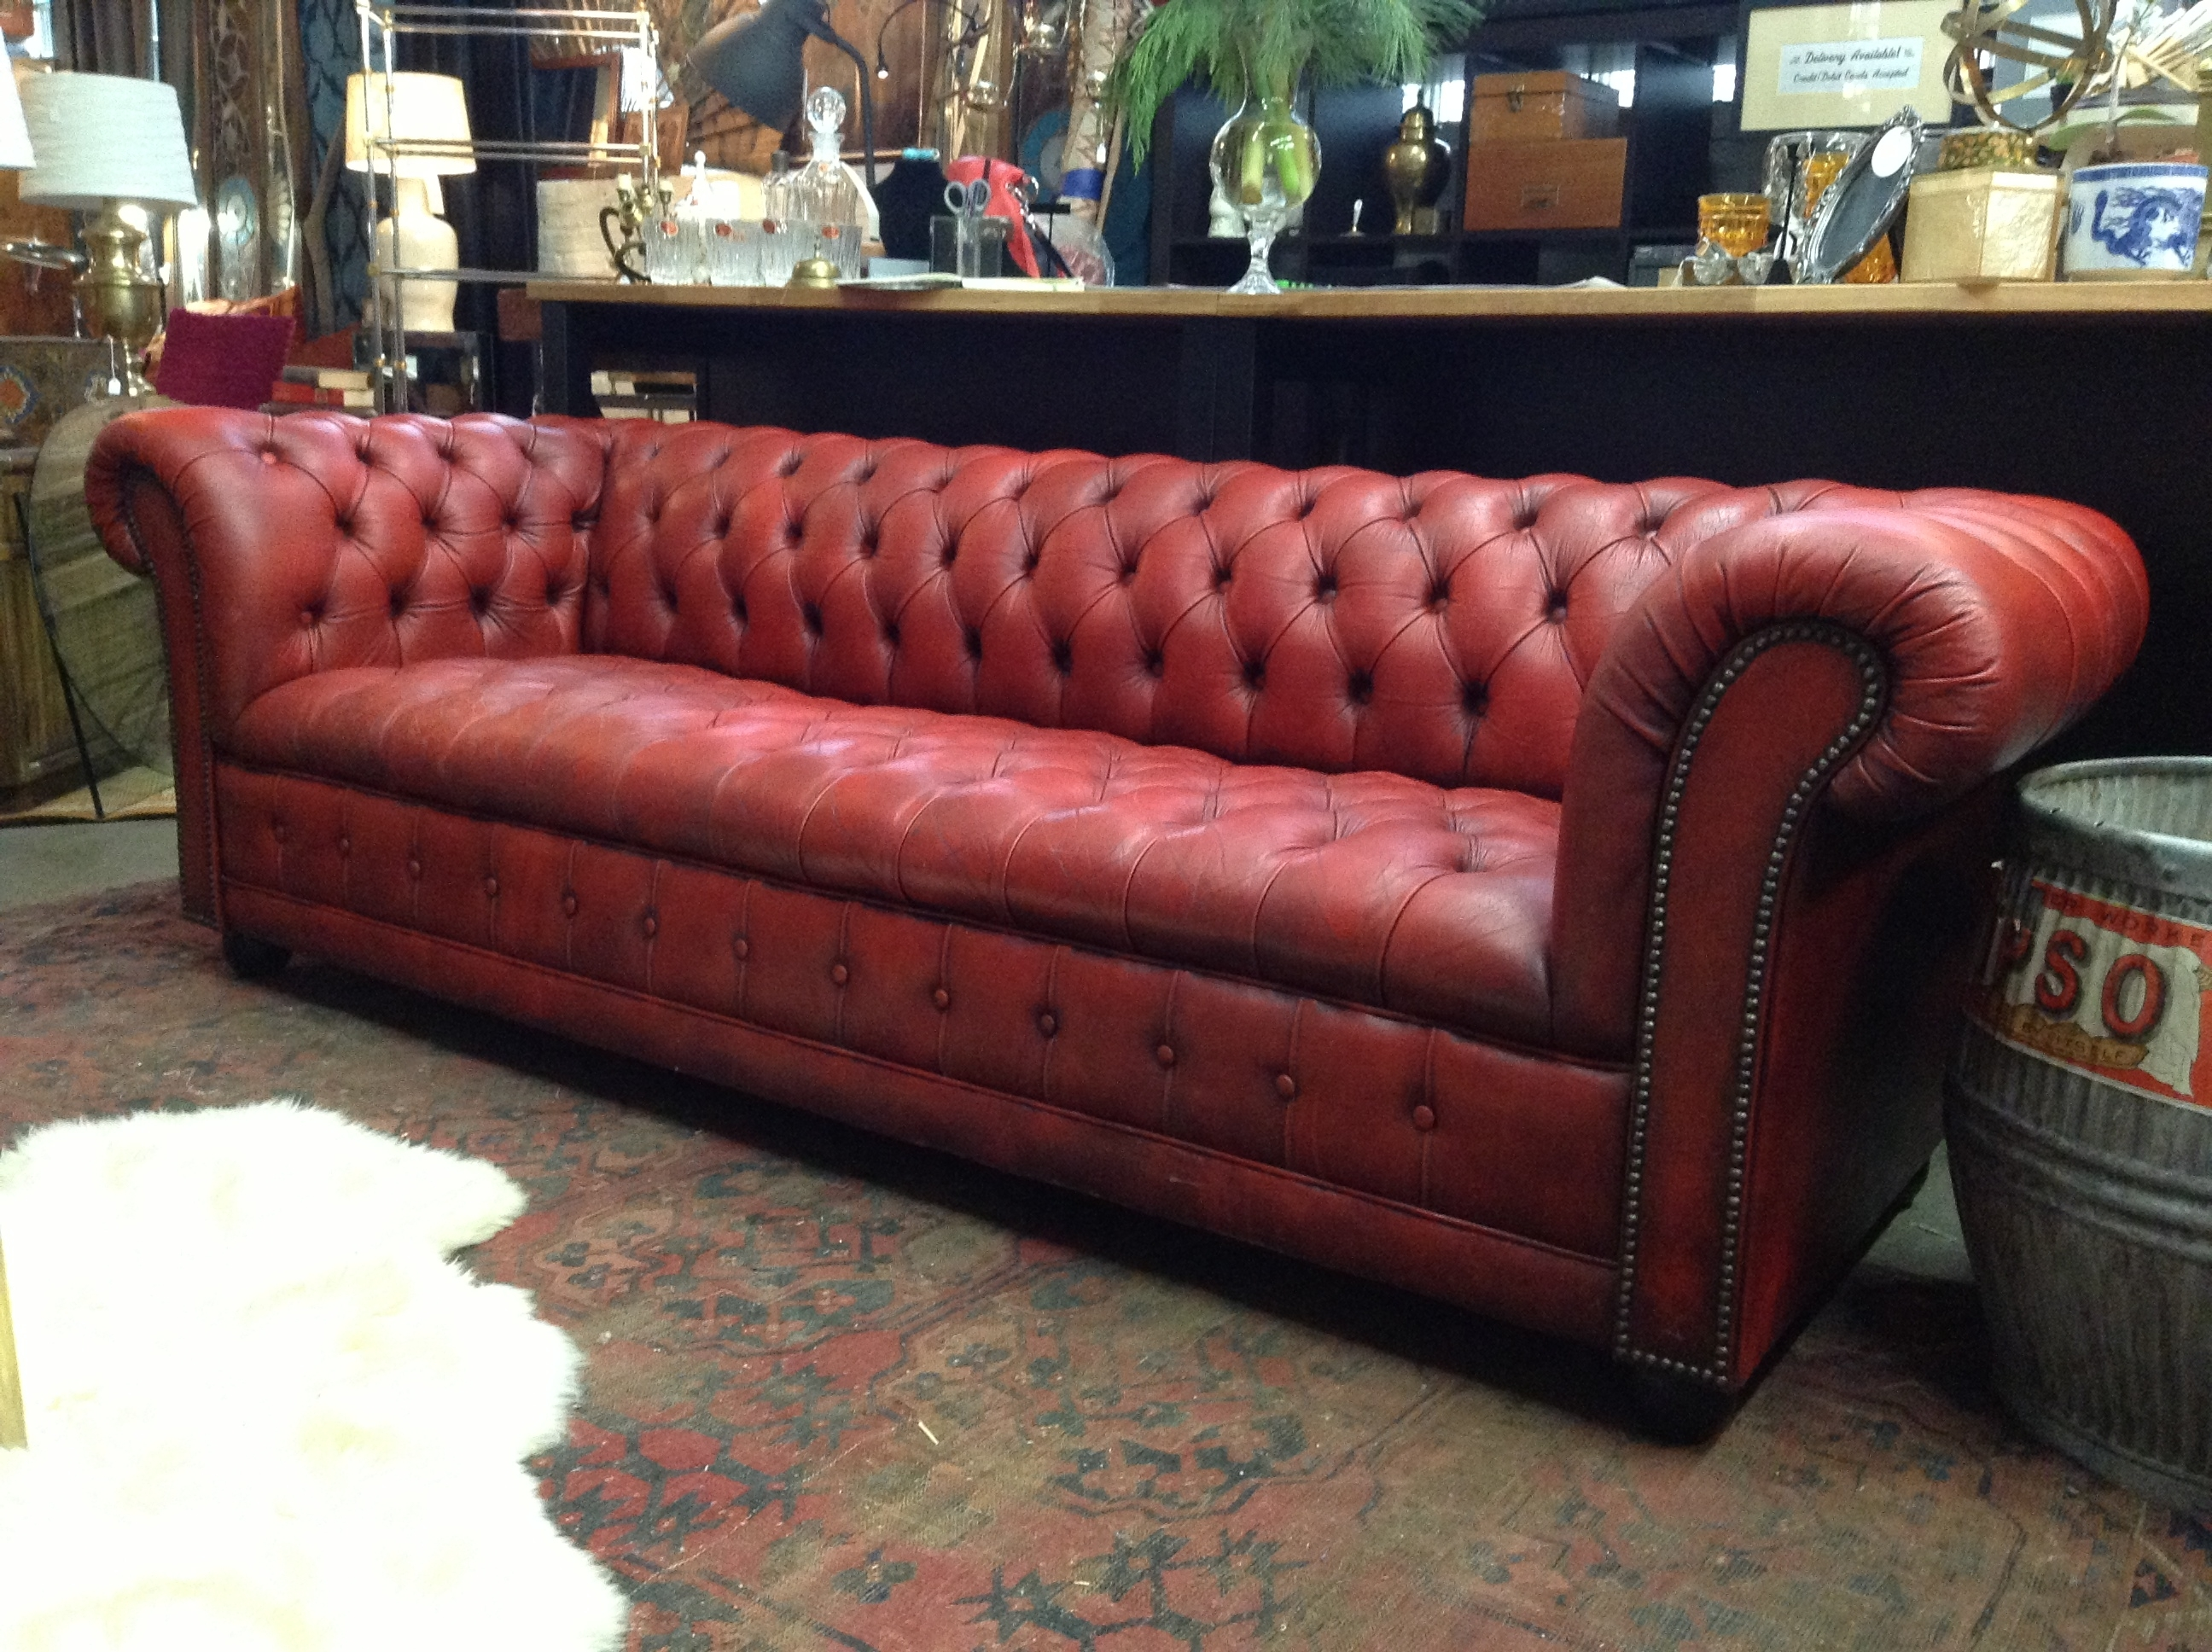 Red Leather Sofa | Aifaresidency In Red Leather Couches (Image 8 of 10)